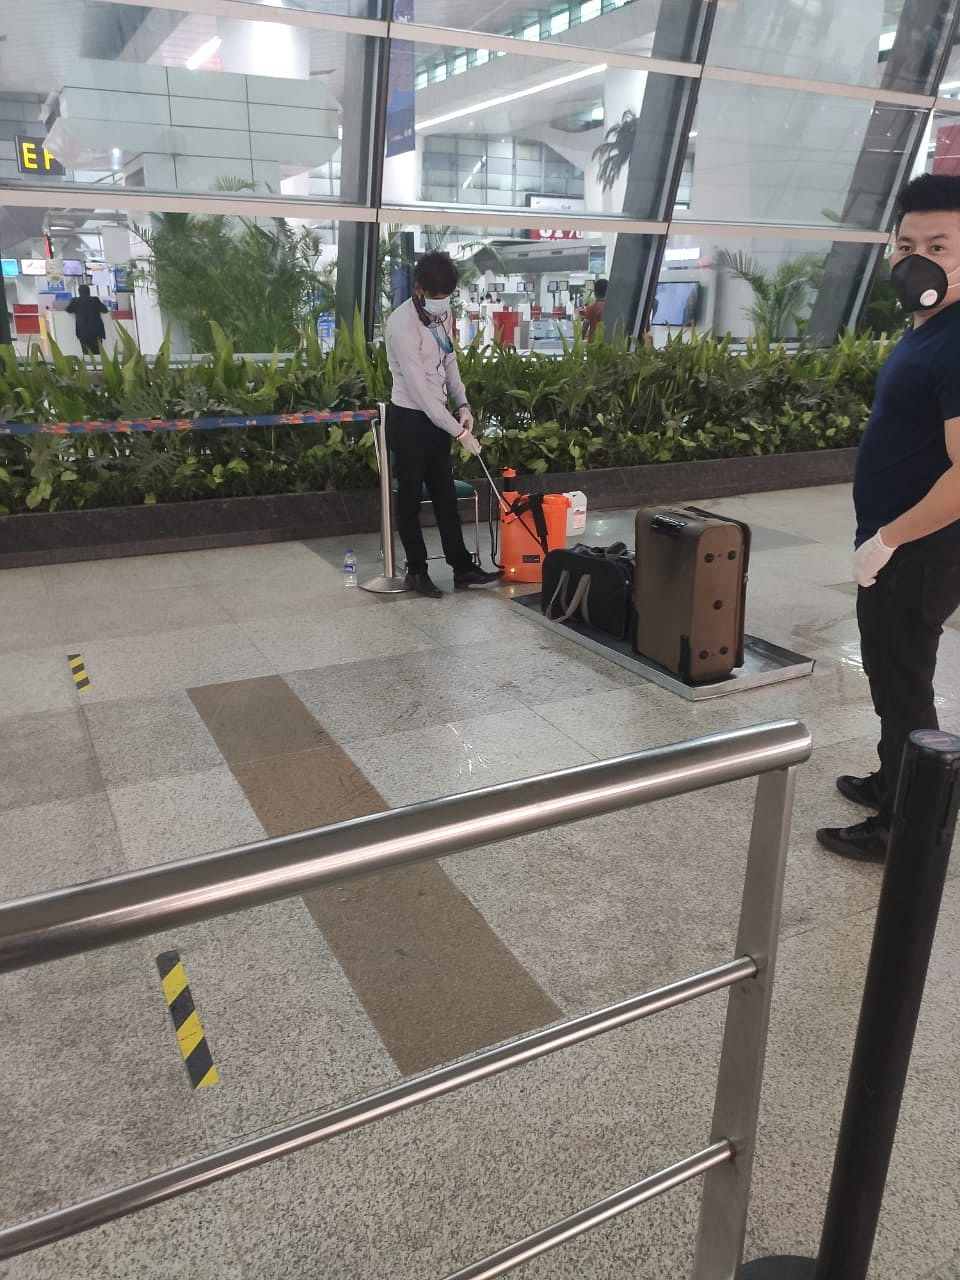 The airport staff were spraying disinfectants on the luggage at the Delhi airport.